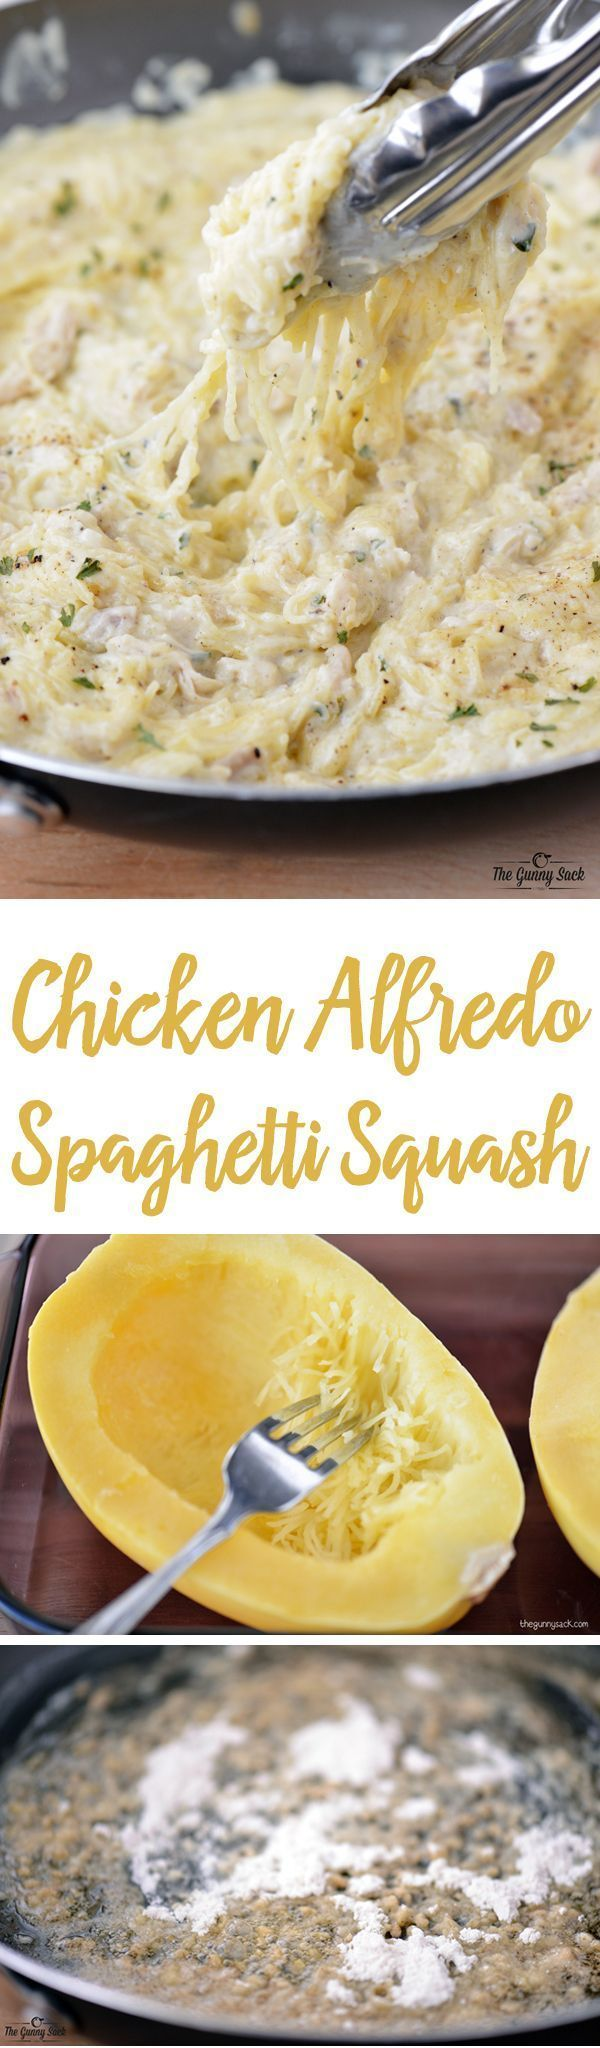 This Chicken Alfredo Spaghetti Squash recipe is pure comfort food! This chicken alfredo spaghetti squash recipe is quick and easy to make. It includes an alfredo sauce recipe make in the skillet. Try it for lunch or dinner!